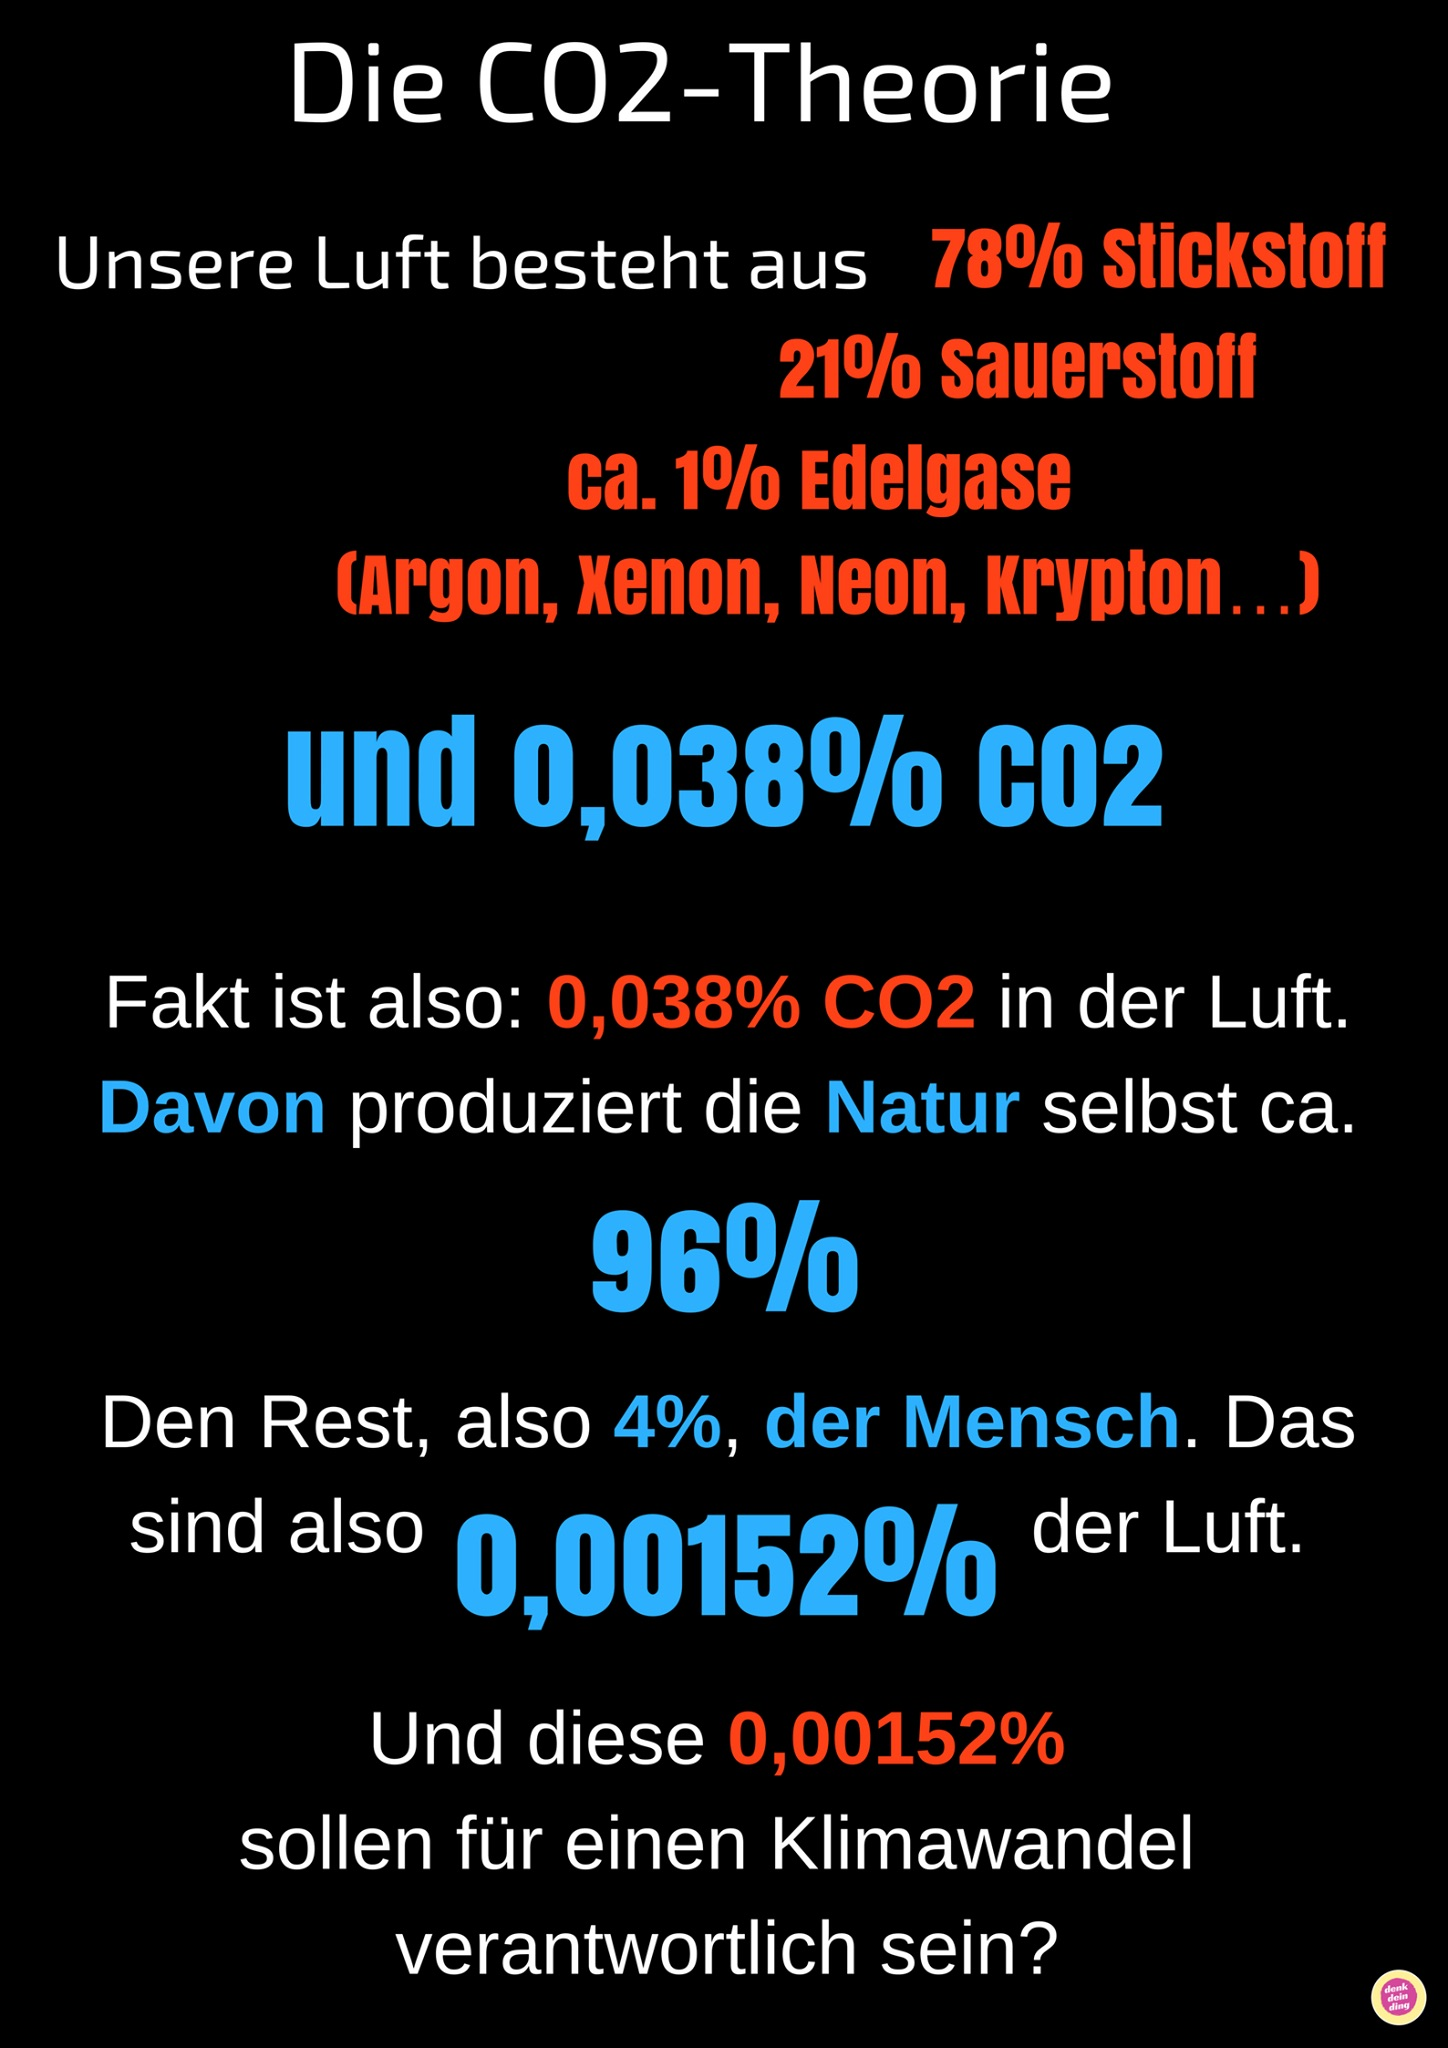 «The CO2-theory» with respiration. Shared over 1300 times.